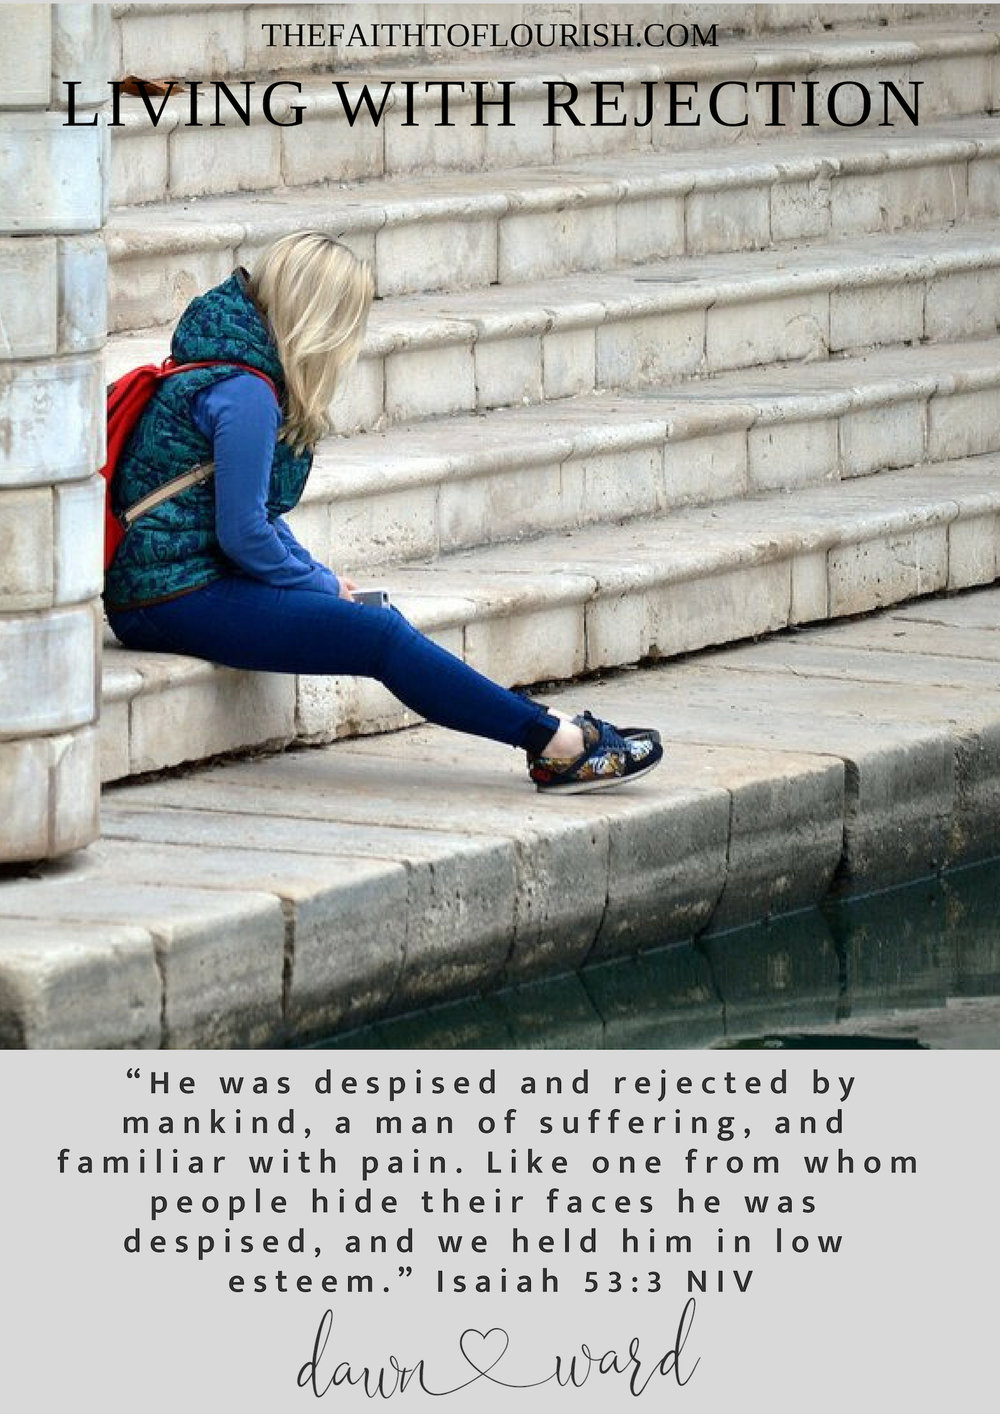 Living with Rejection is very painful, especially if it is from your children, spouses, or loved ones who might be rebelling, living destructive lifestyles, struggling with additiction or mental illness. it is painful to try and rebuild a relationship with someone who has rejected you and your values, even your God.